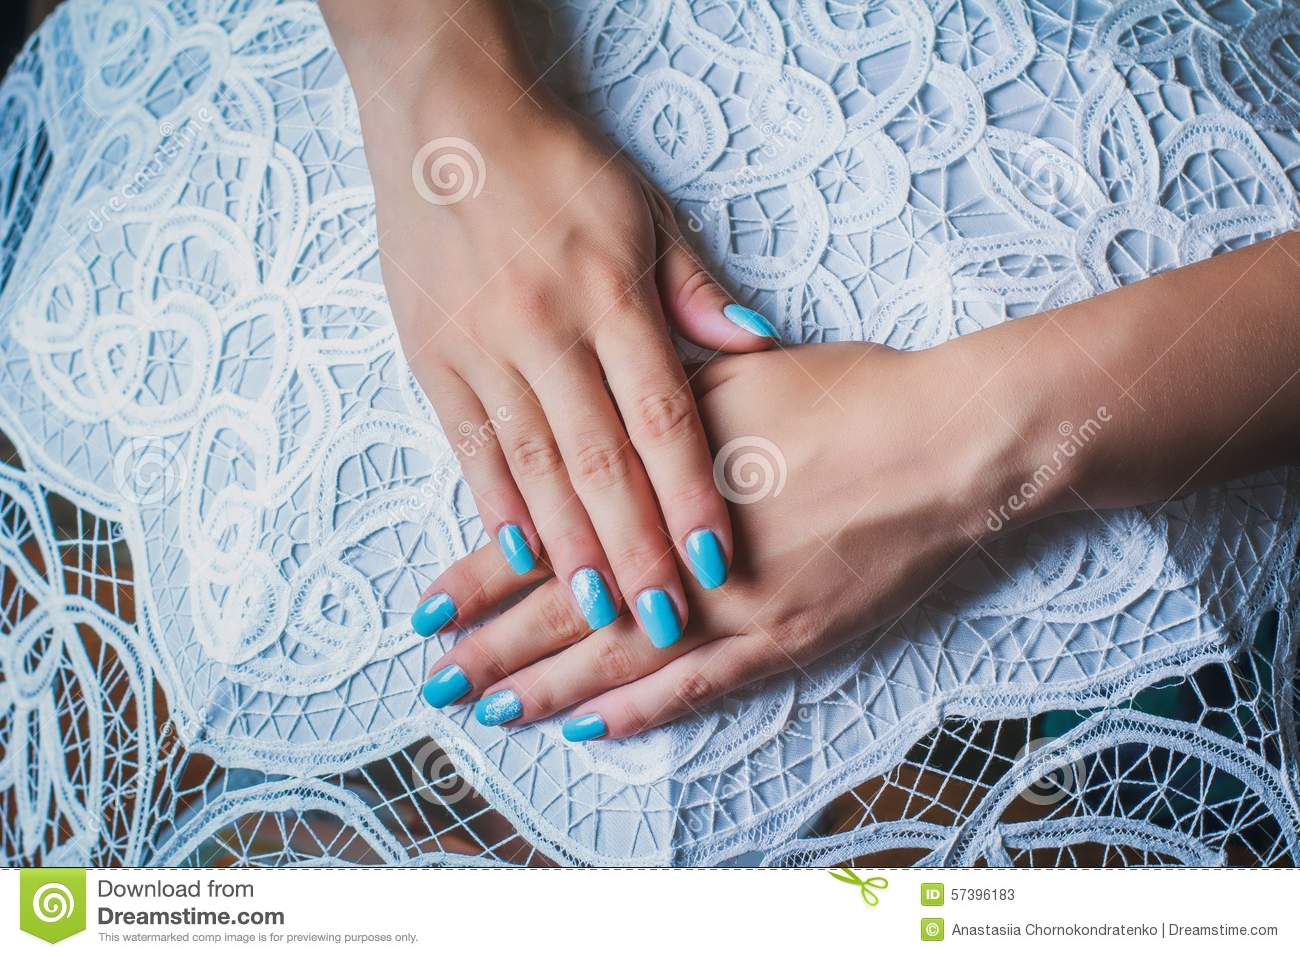 Nail Art With Blue Background And White Lace Stock Image - Image of ...